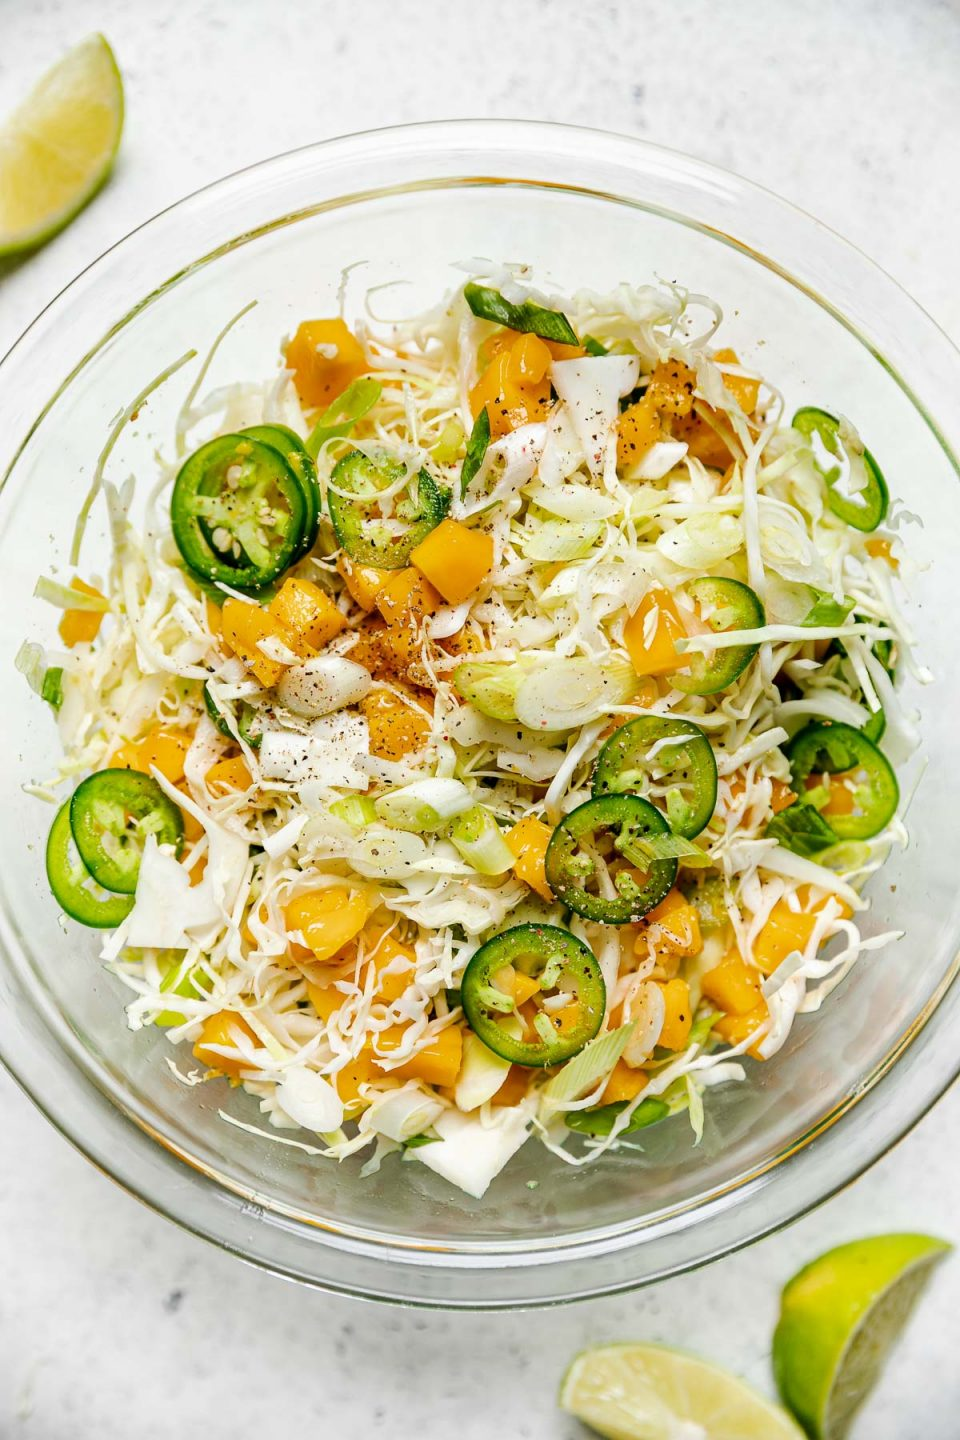 Fish Taco Slaw tossed together in a glass mixing bowl. The bowl sits atop a white surface, next to lime wedges. The ginger mango slaw is topped with thinly sliced jalapeno & a dusting of Tajín seasoning.